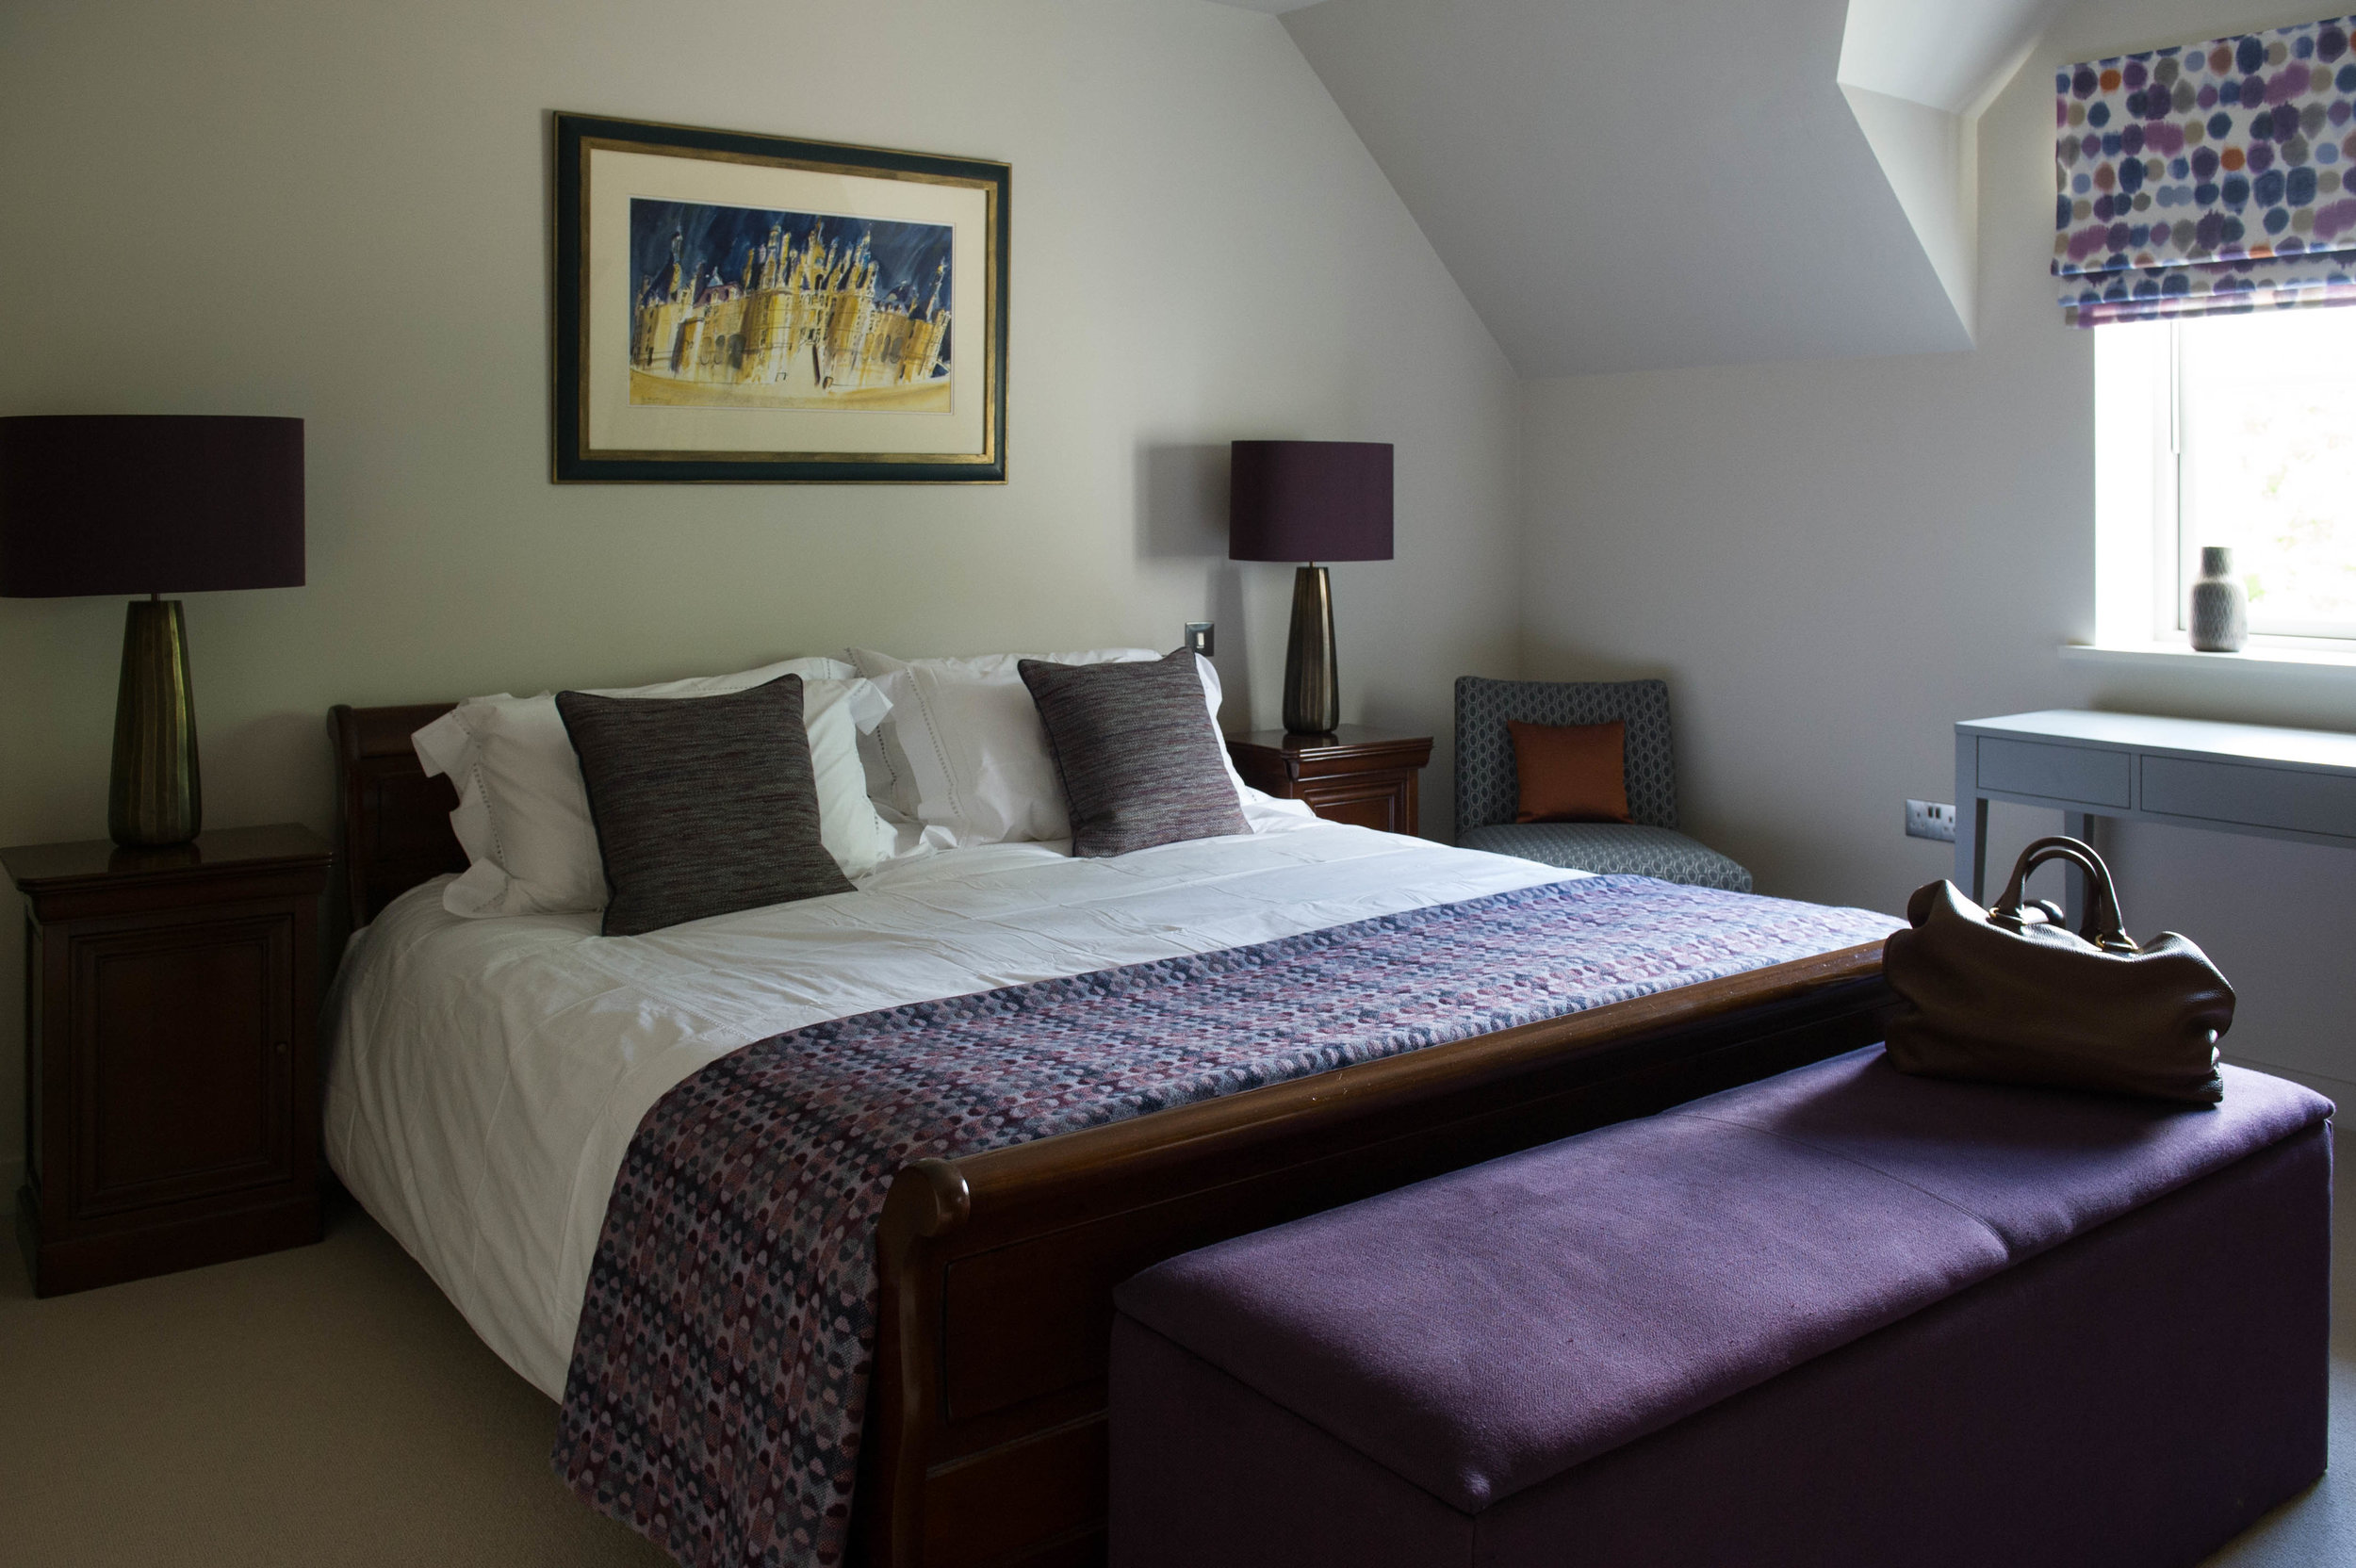 Bedroom in purple and blue tones with orange accents. Timber sleigh bed and bedside tables with table lamps, blanket box, bedroom chair and dressing table. By Joseph Interior Design, Cheltenham.